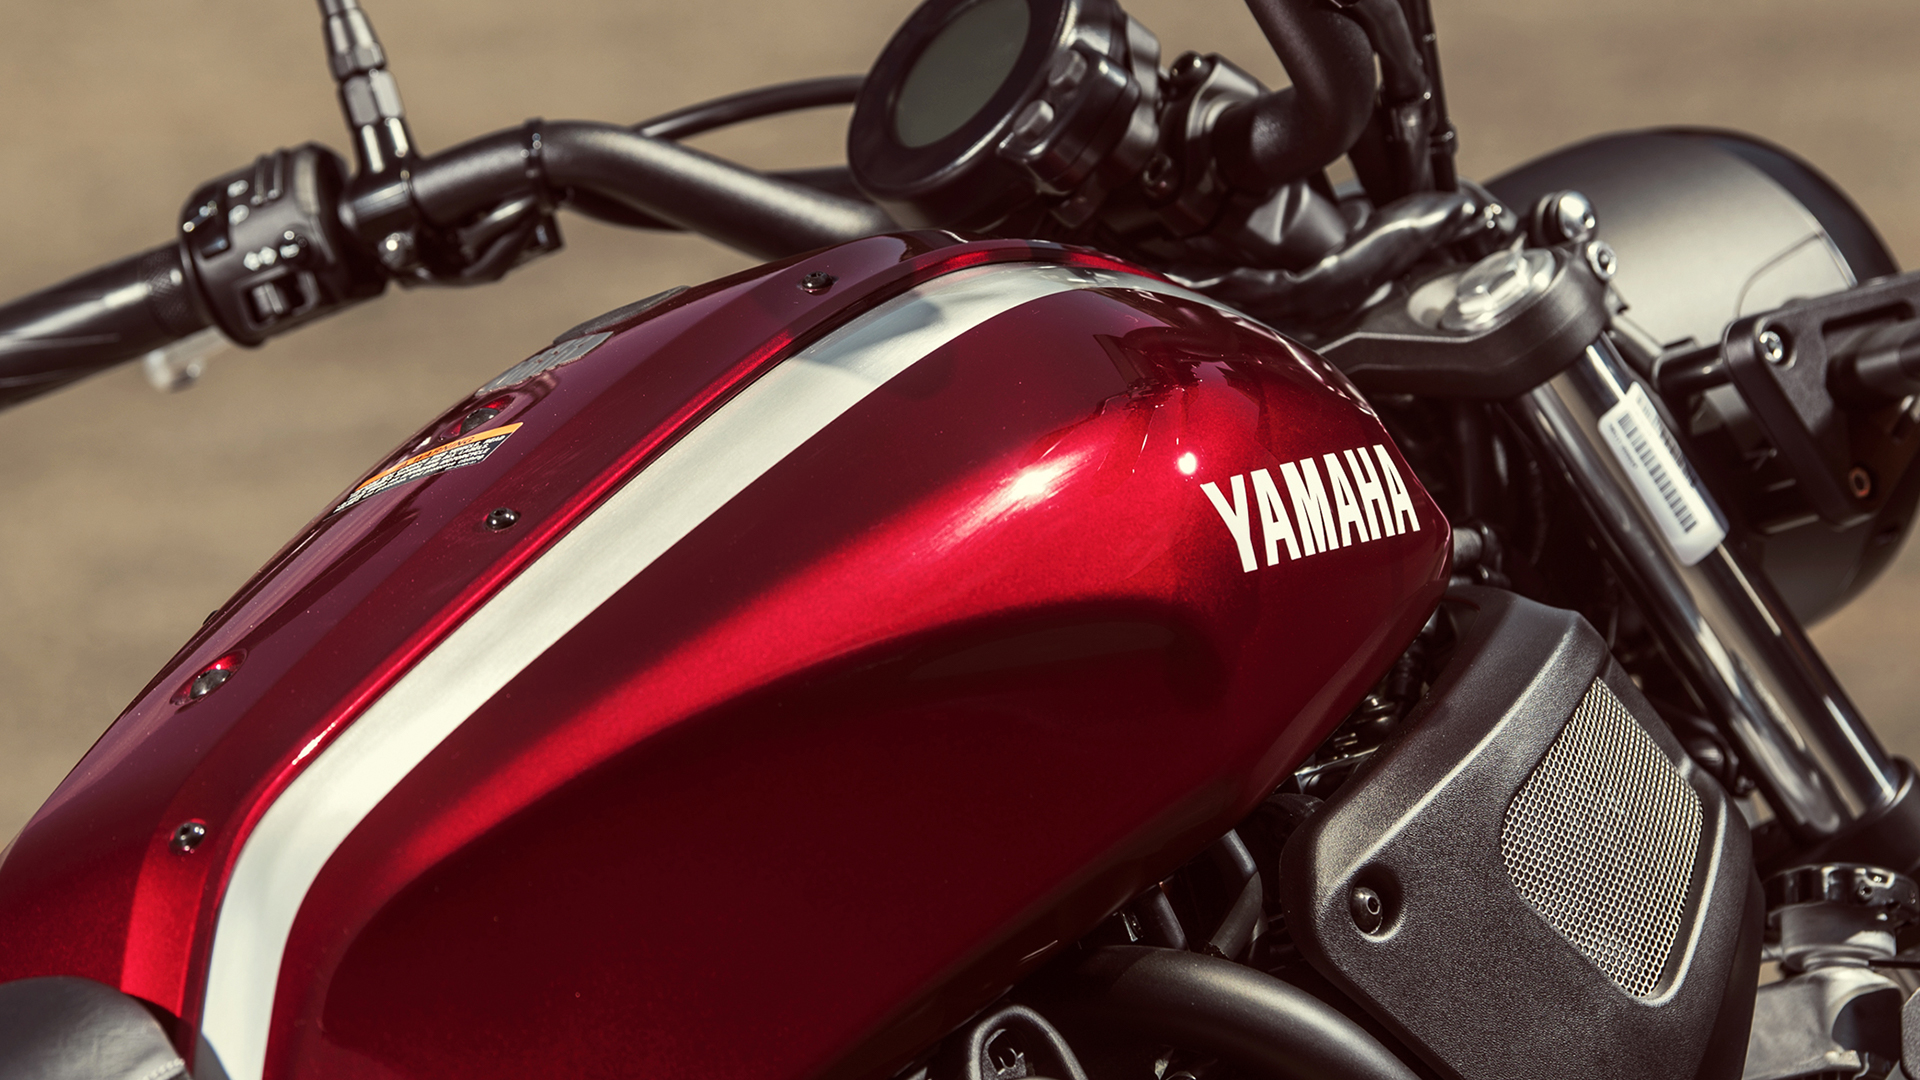 Red Yamaha motorcycle